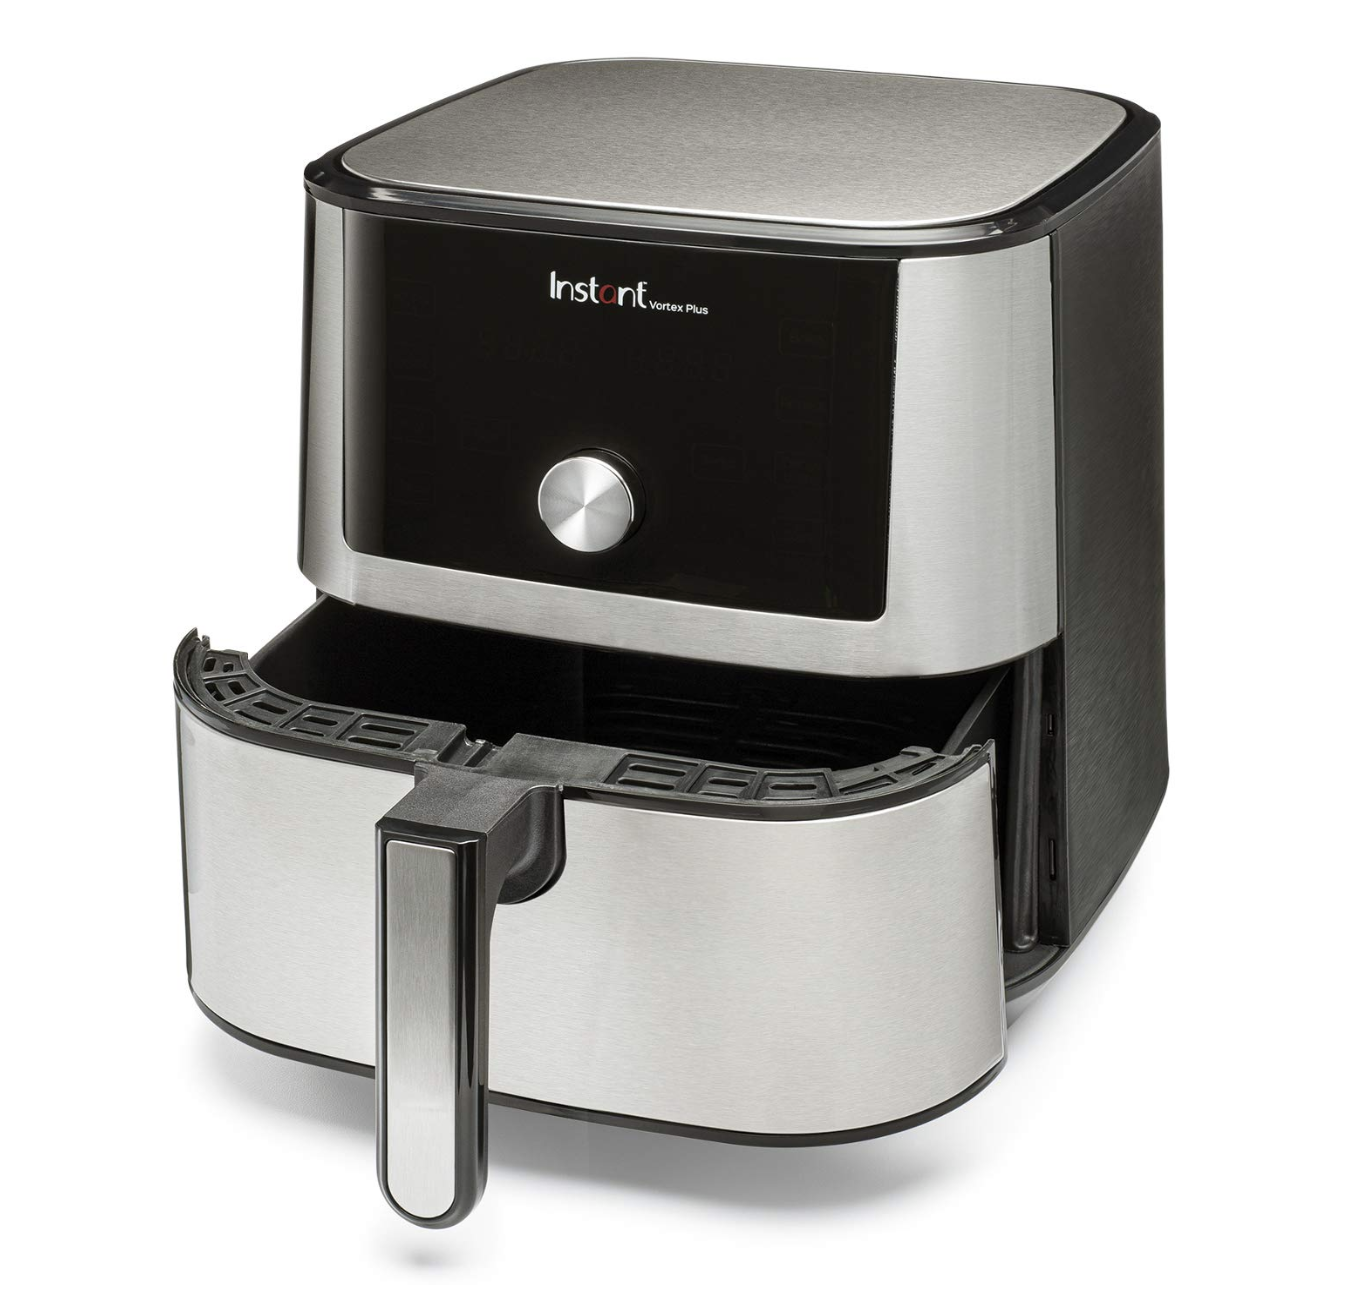 Instant Vortex Plus 6-in-1 air fryer